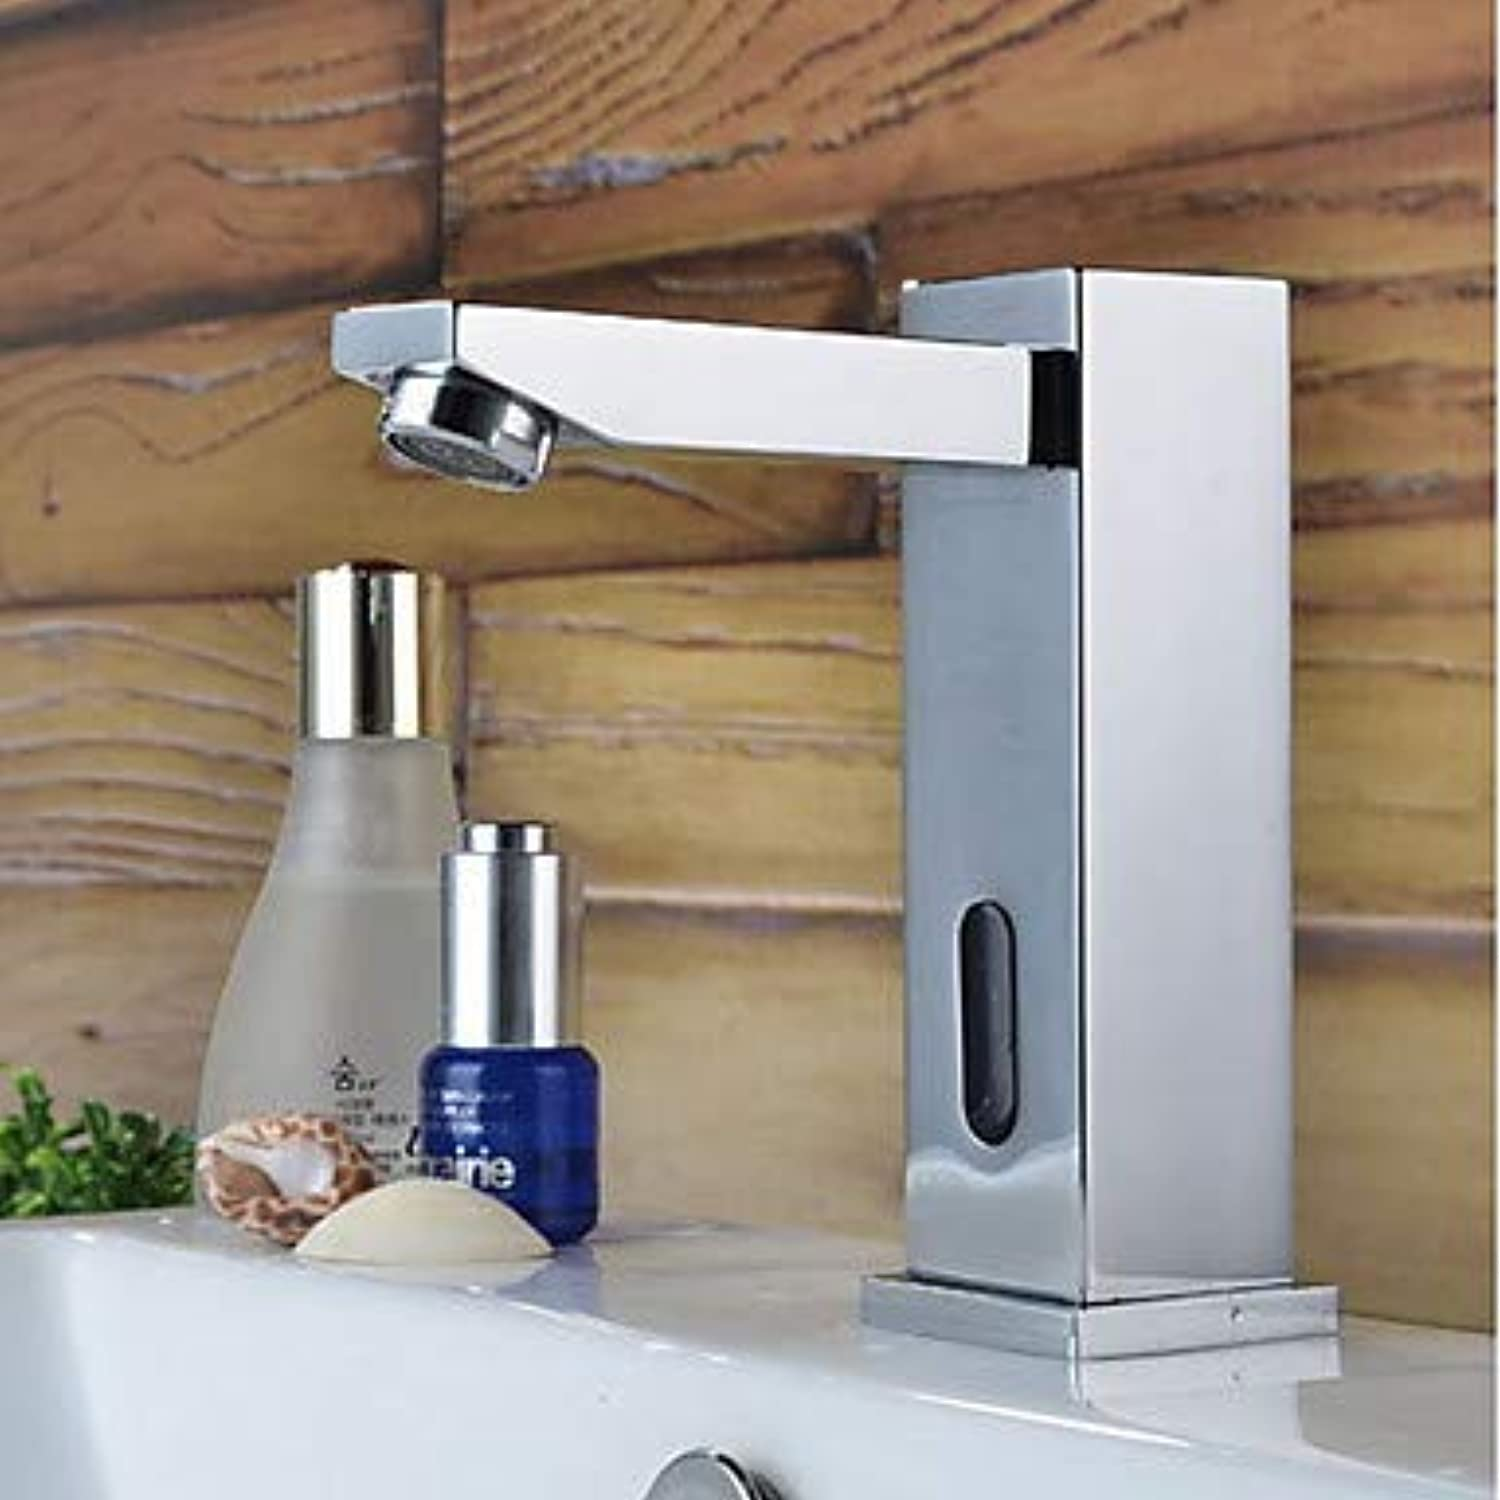 Mangeoo Bathroom Sink Faucet - Widespread Sensor Electroplated Free Standing Hands Free One Holebath Taps Brass